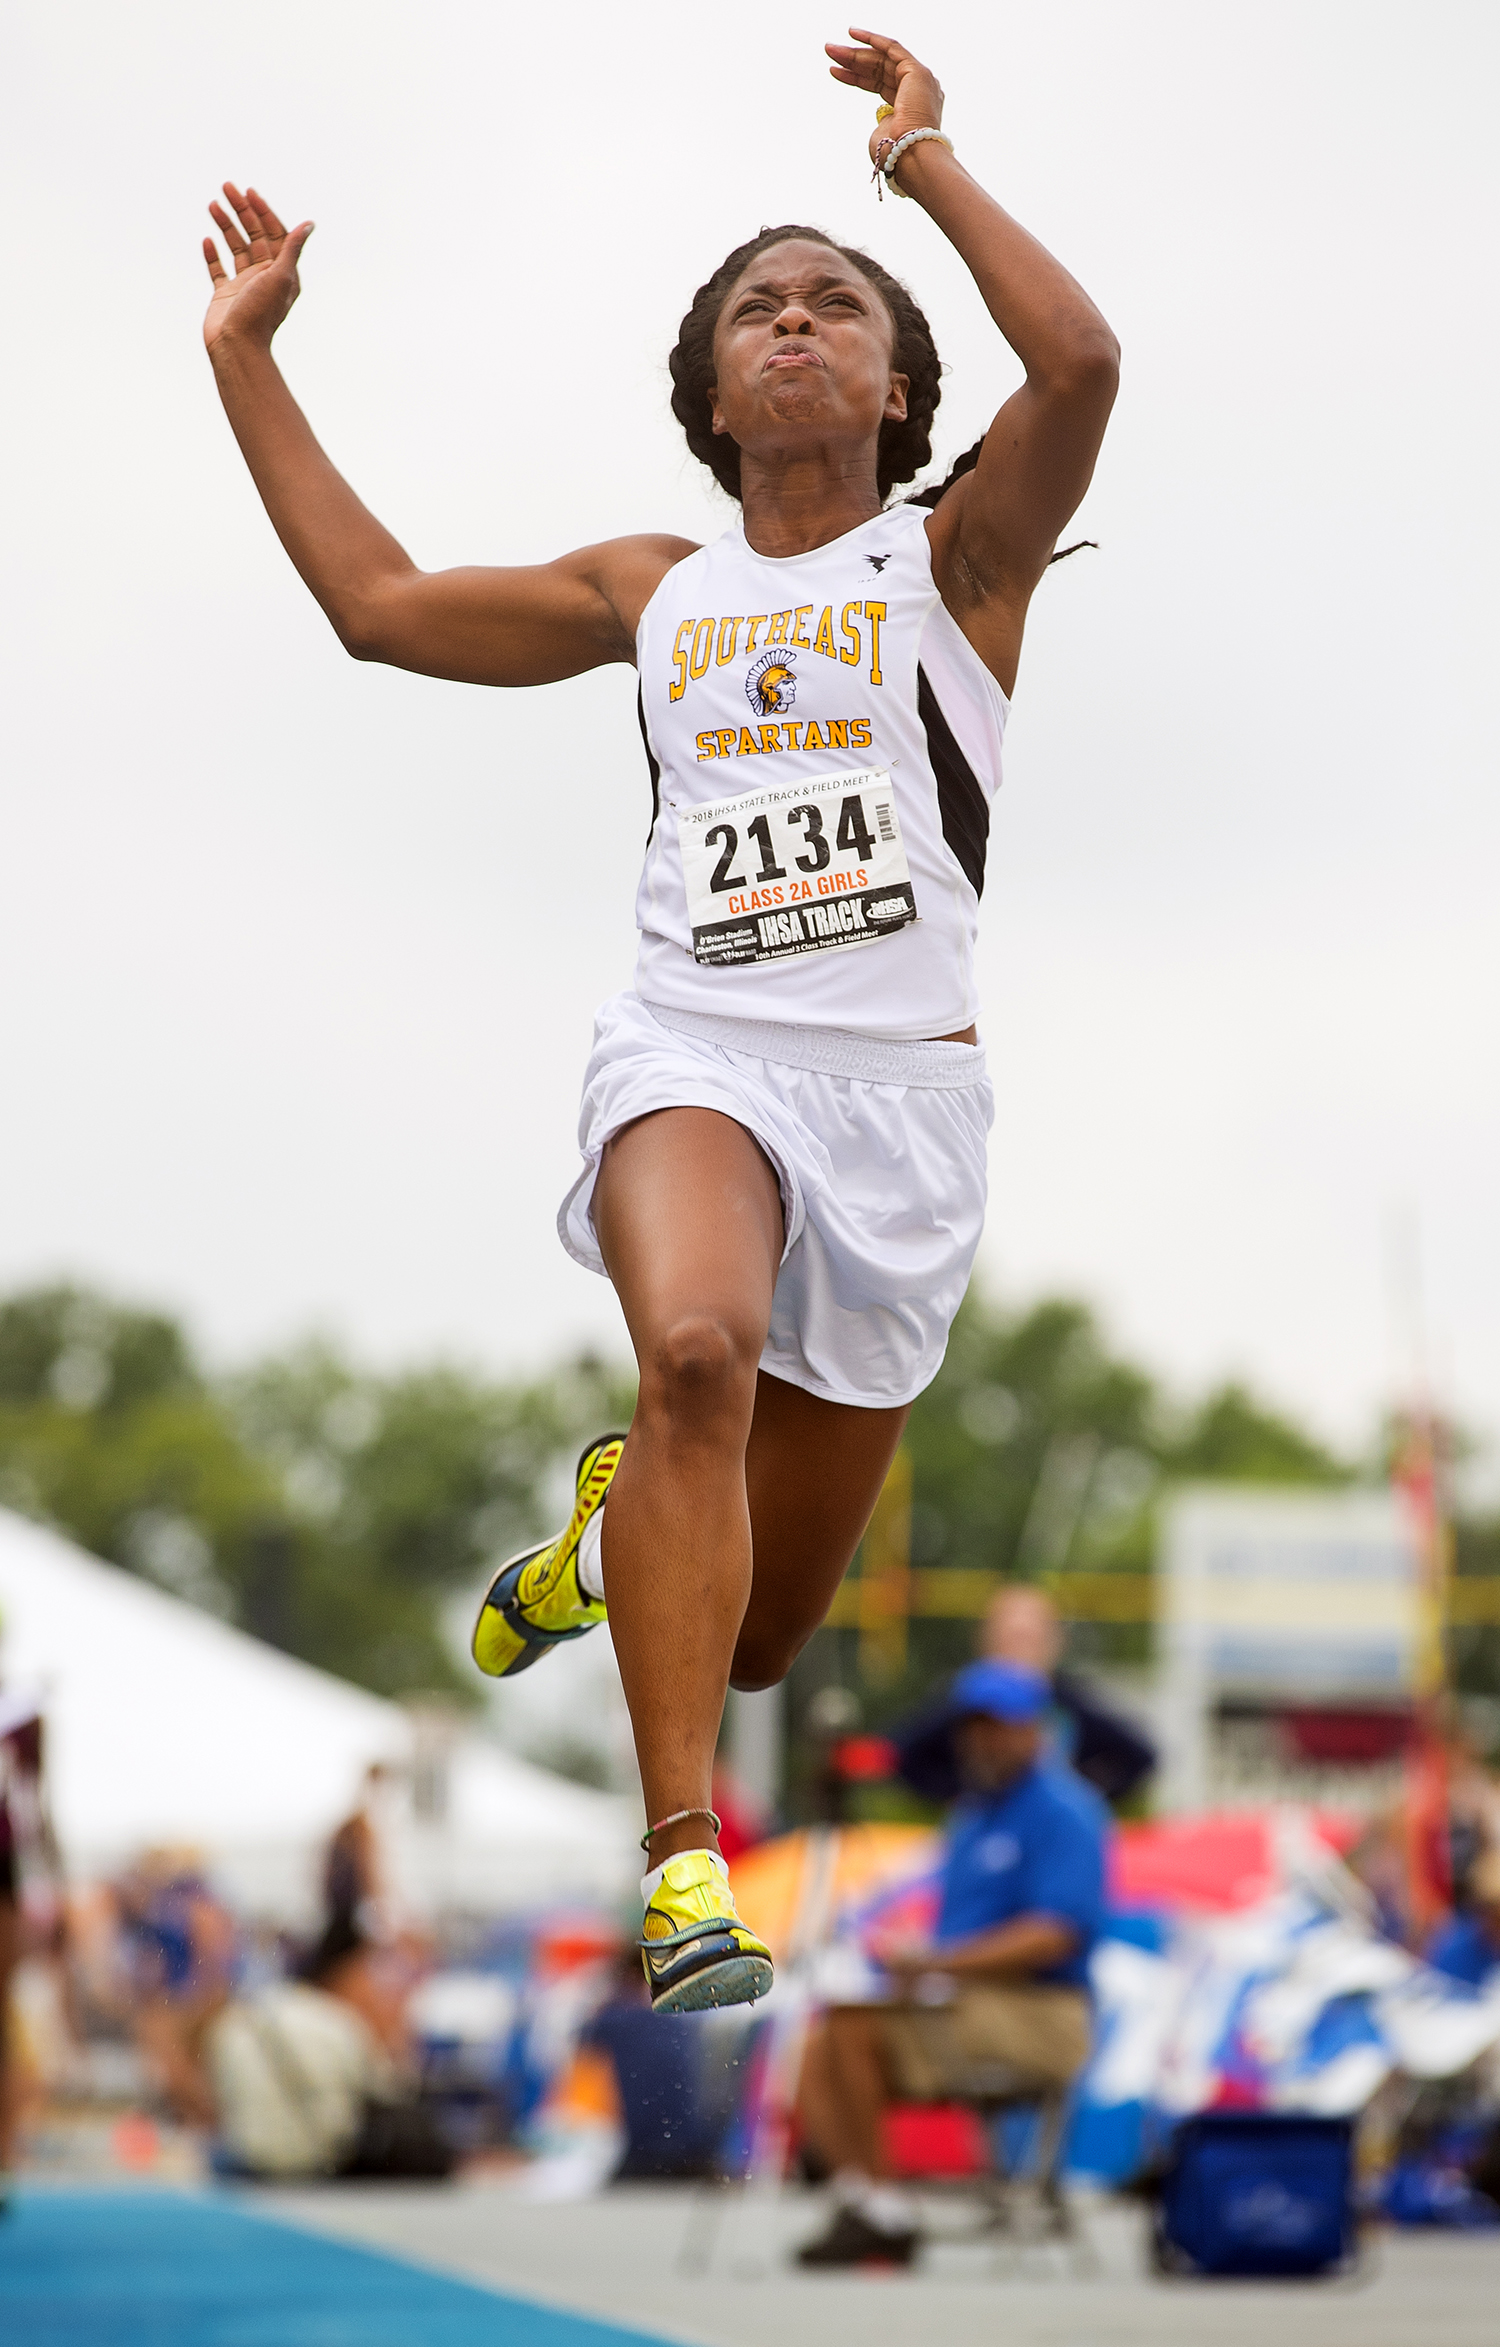 Serena Bolden competes in the Class 2 A long jump during the IHSA Track and Field State Finals at O'Brien Field in Charleston, Ill., Saturday, May 19, 2018. Bolden finished third in the event. [Ted Schurter/The State Journal-Register]